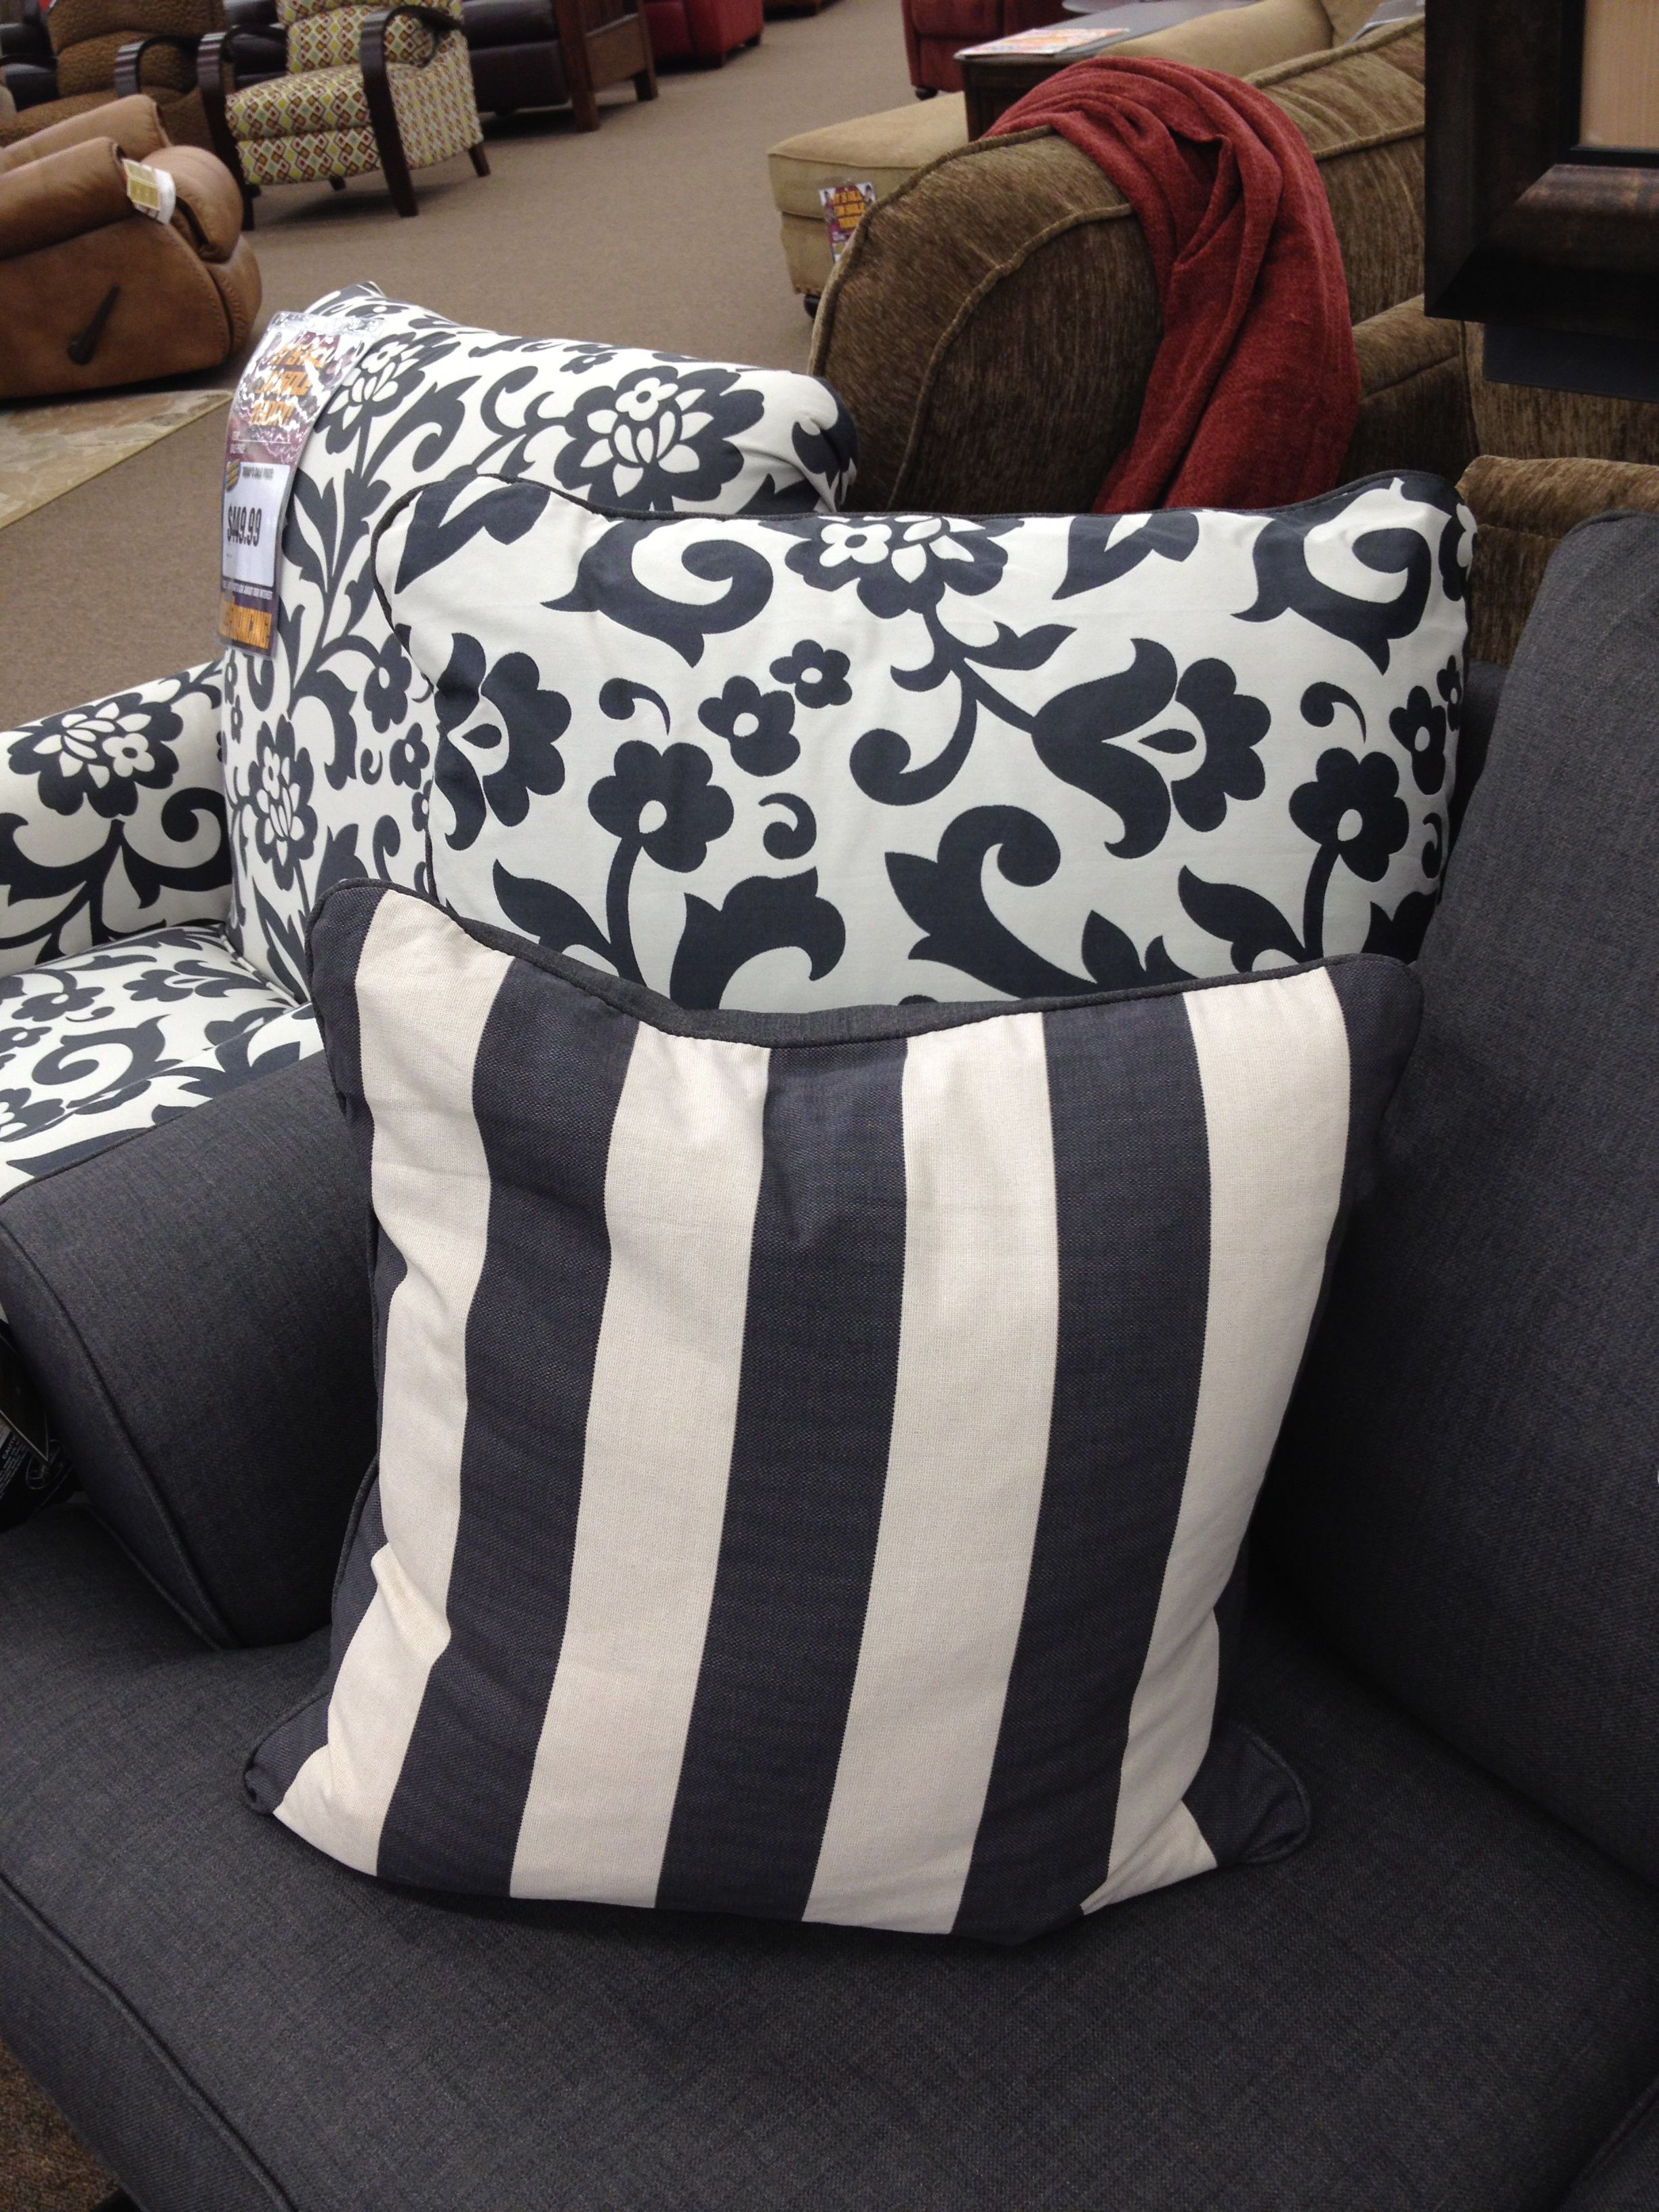 White and grey blue stripes plement the floral print on this